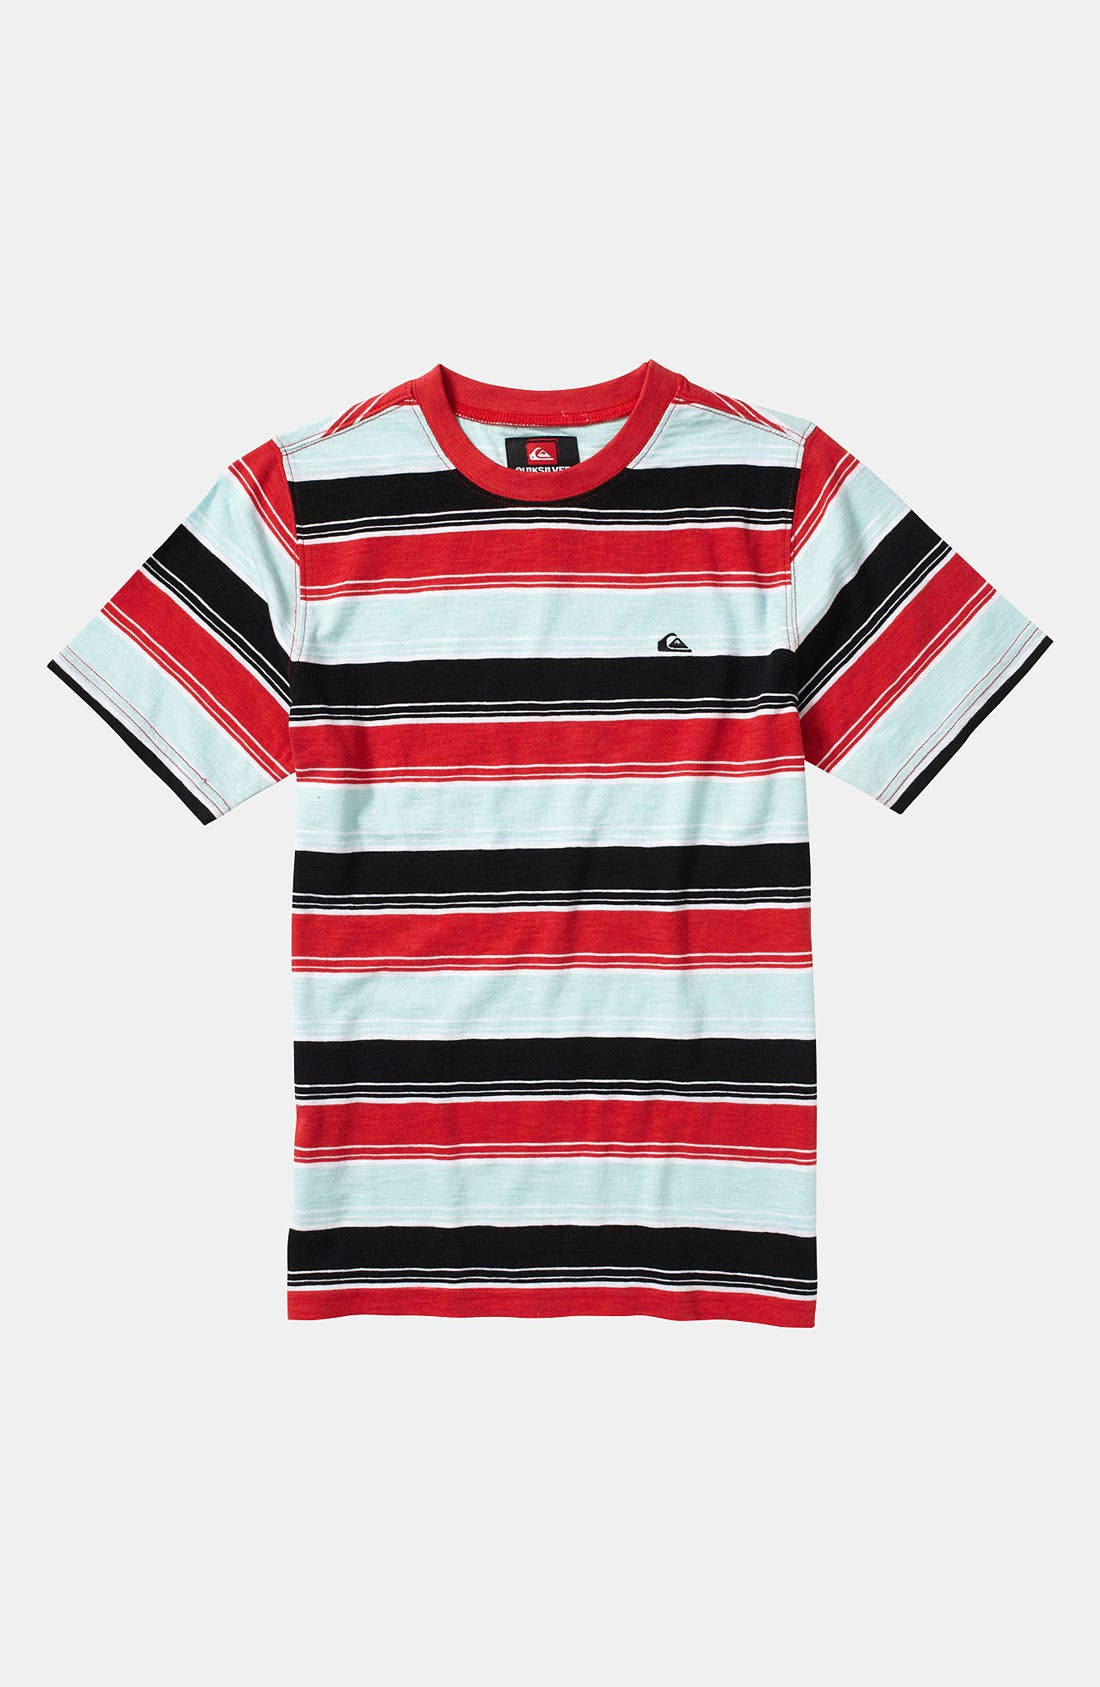 Alternate Image 1 Selected - Quiksilver 'Downside' T-Shirt (Little Boys)